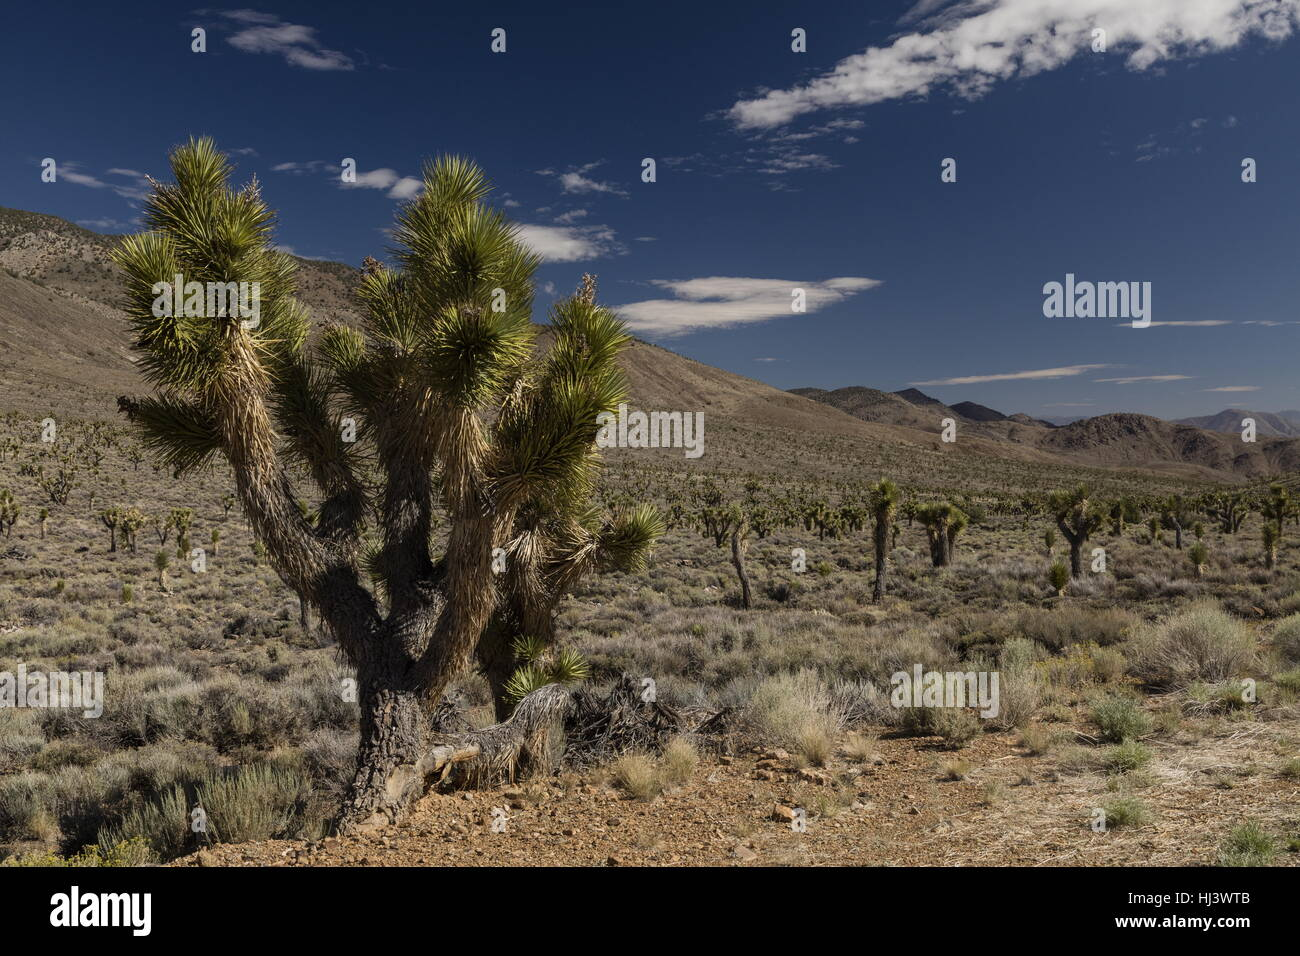 Joshua trees, Yucca brevifolia in the upper Eureka Valley, Death Valley National Park, California. - Stock Image